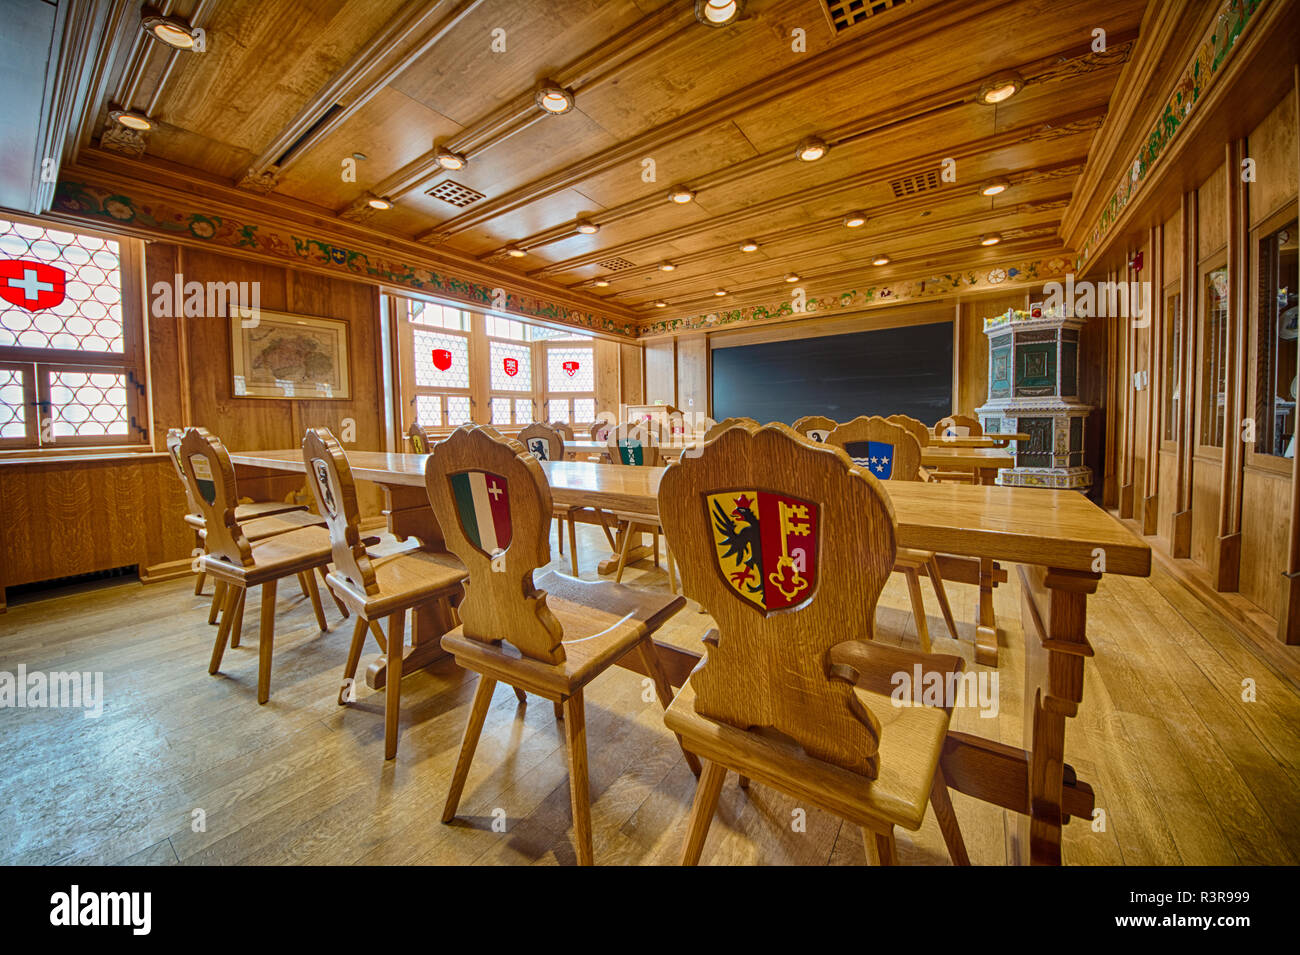 The Swiss classroom in the University of Pittsburgh's Nationality Rooms, Pittsburgh, Pennsylvania, USA - Stock Image